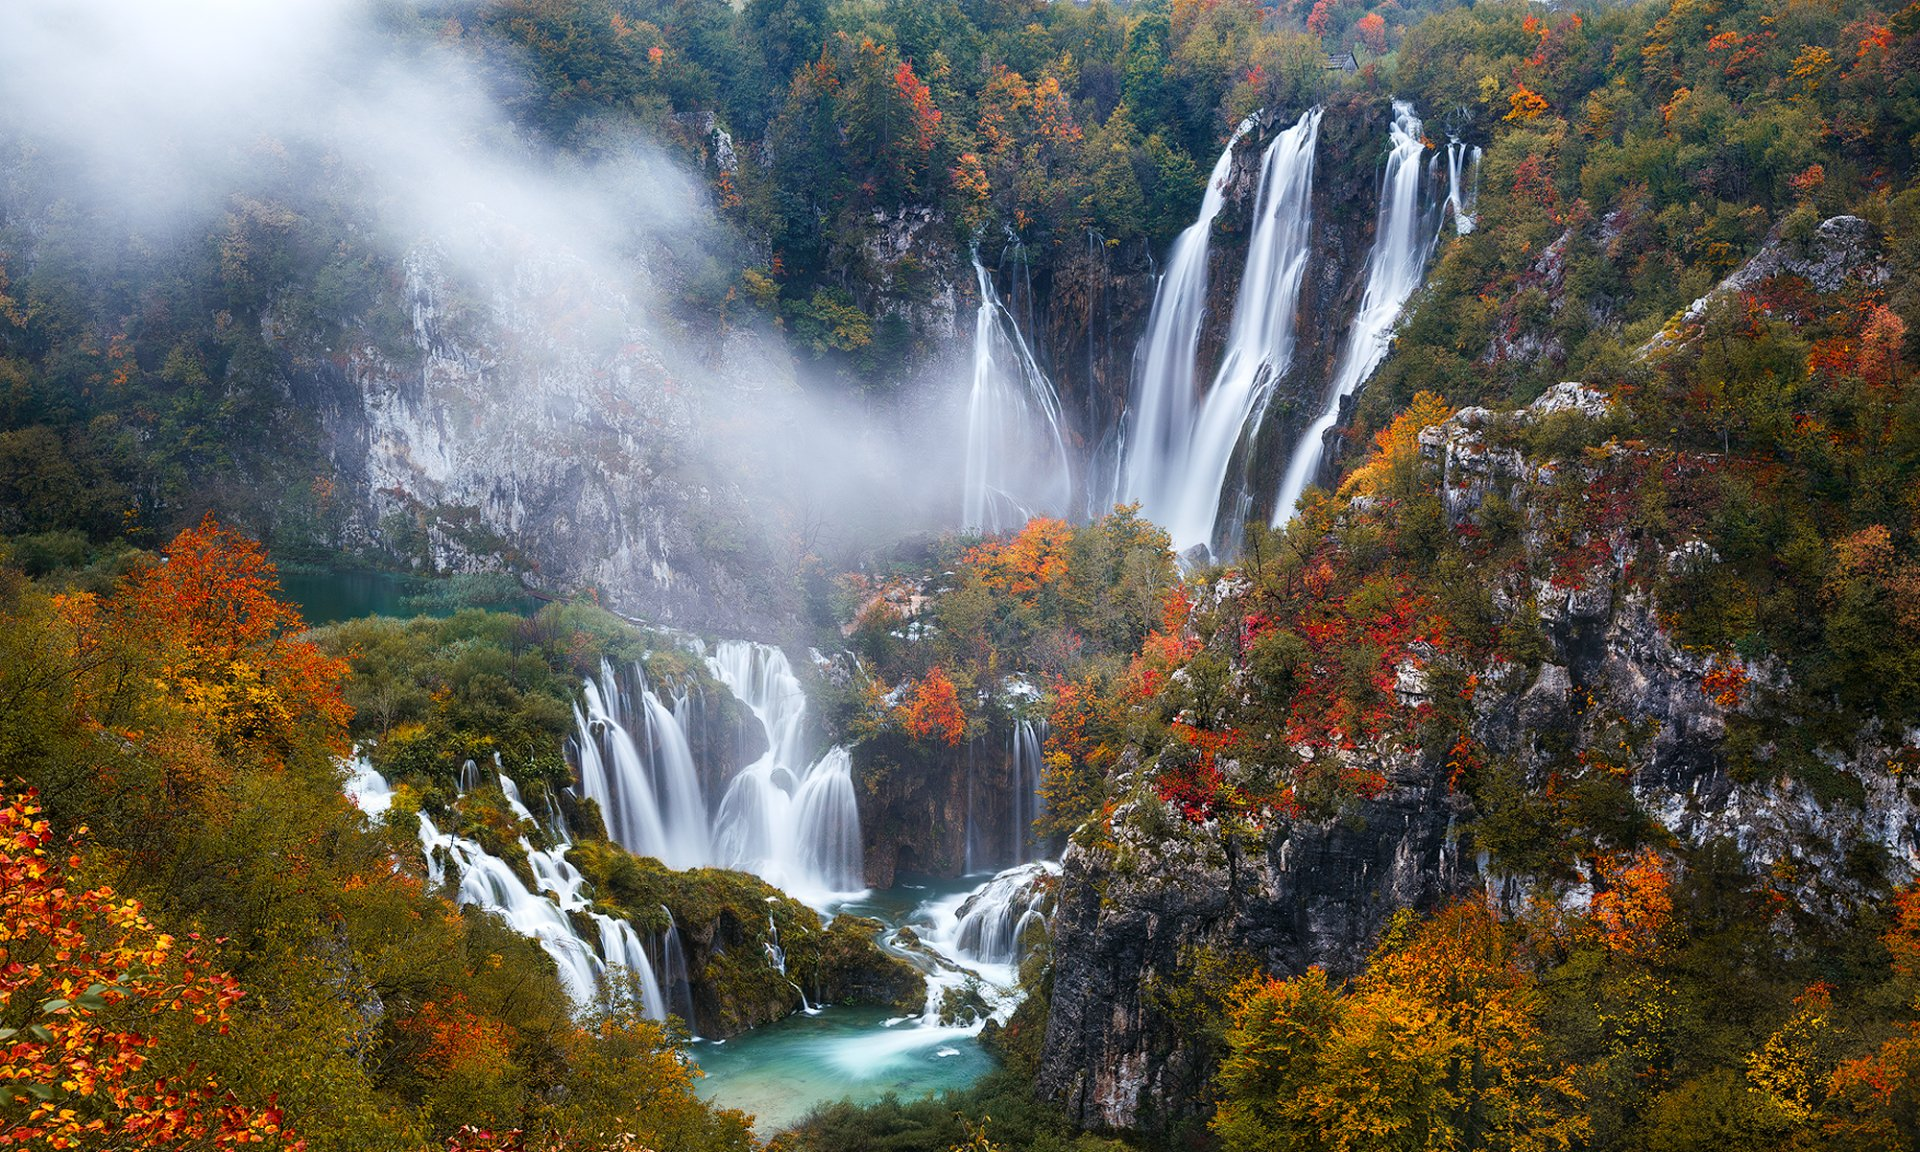 Fall Foliage Wallpaper Widescreen Plitvice Lakes National Park In Autumn Hd Wallpaper